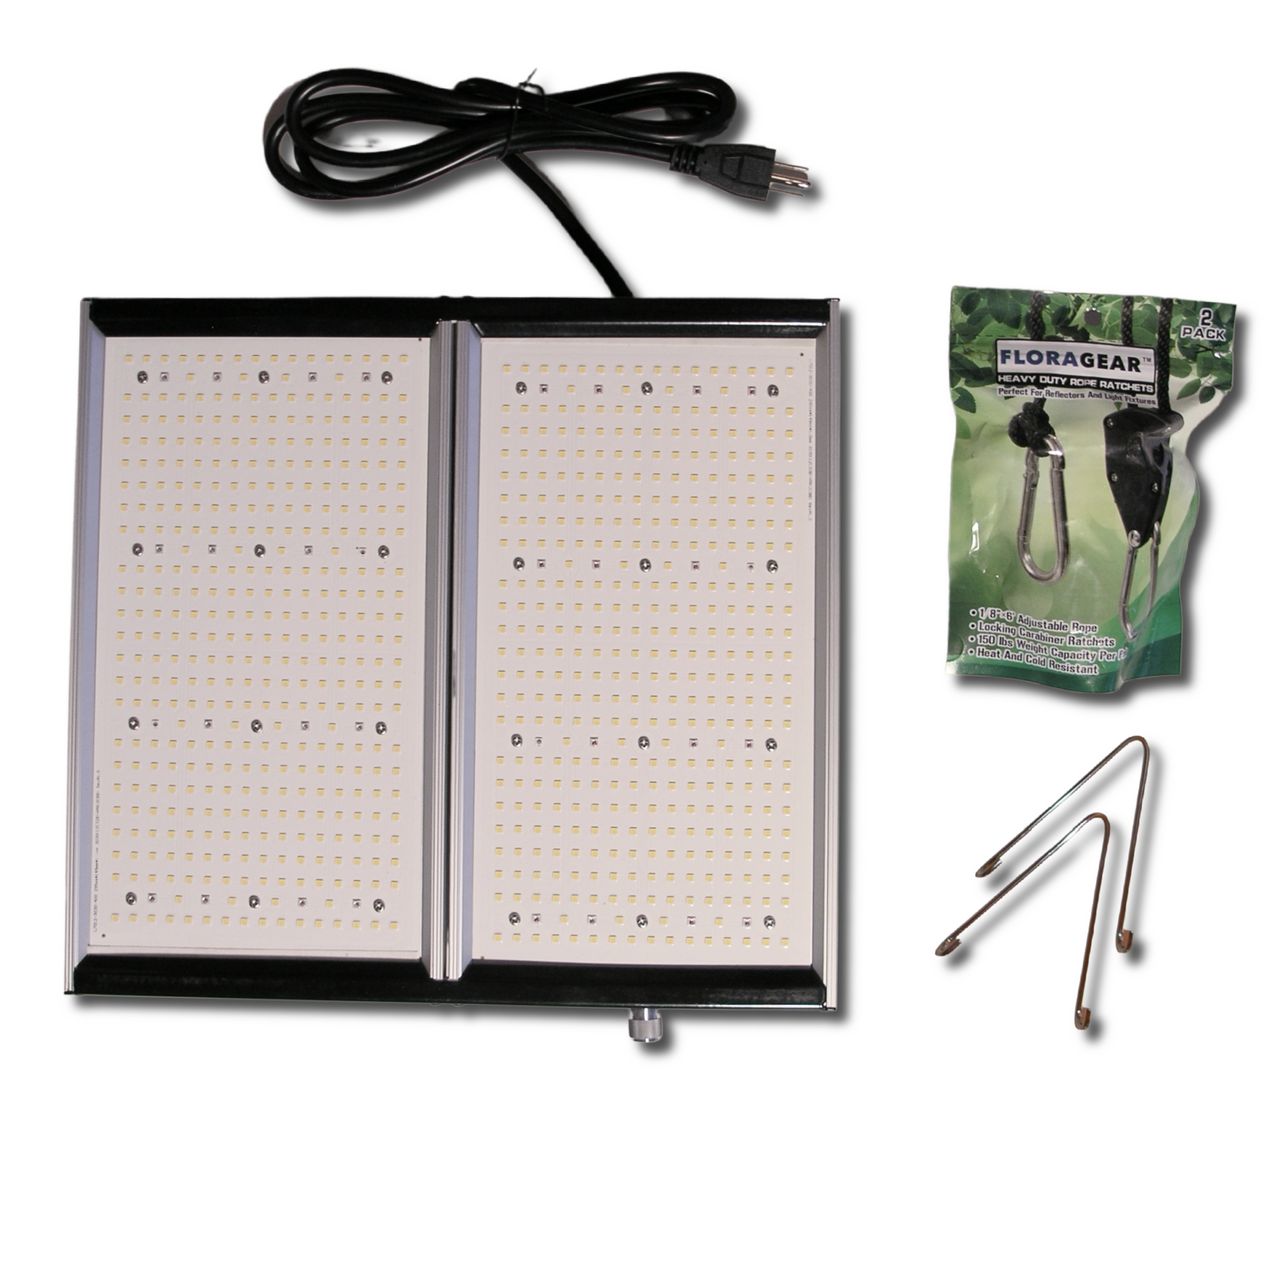 """FloraGear Flora S2   12"""" x 13"""" Full-Spectrum LED Grow Light with Built-In Infinite Control Dimmer   200w - 120v"""